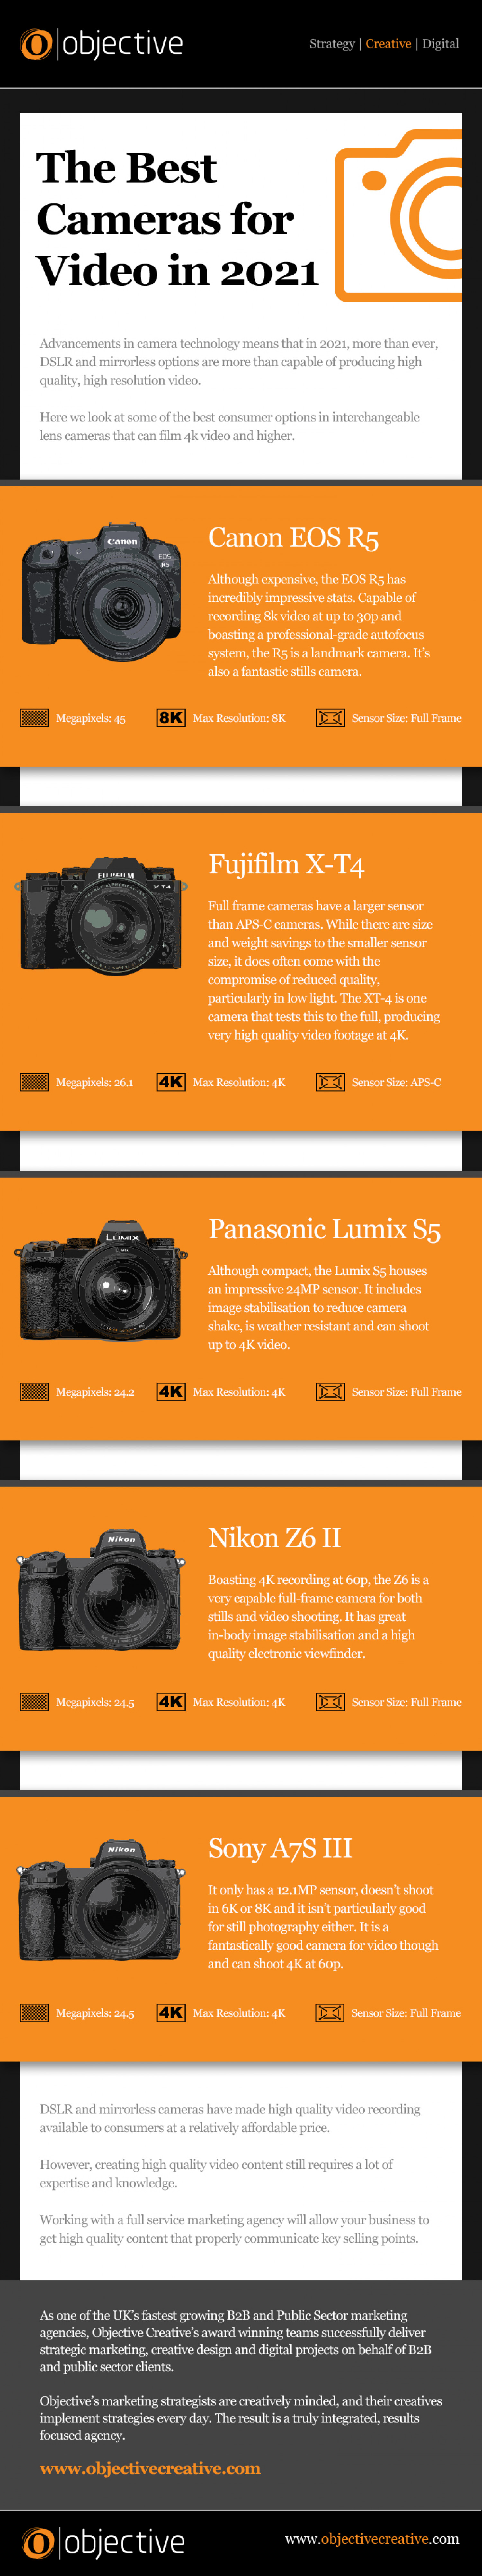 The Best Cameras for Video in 2021 Infographic